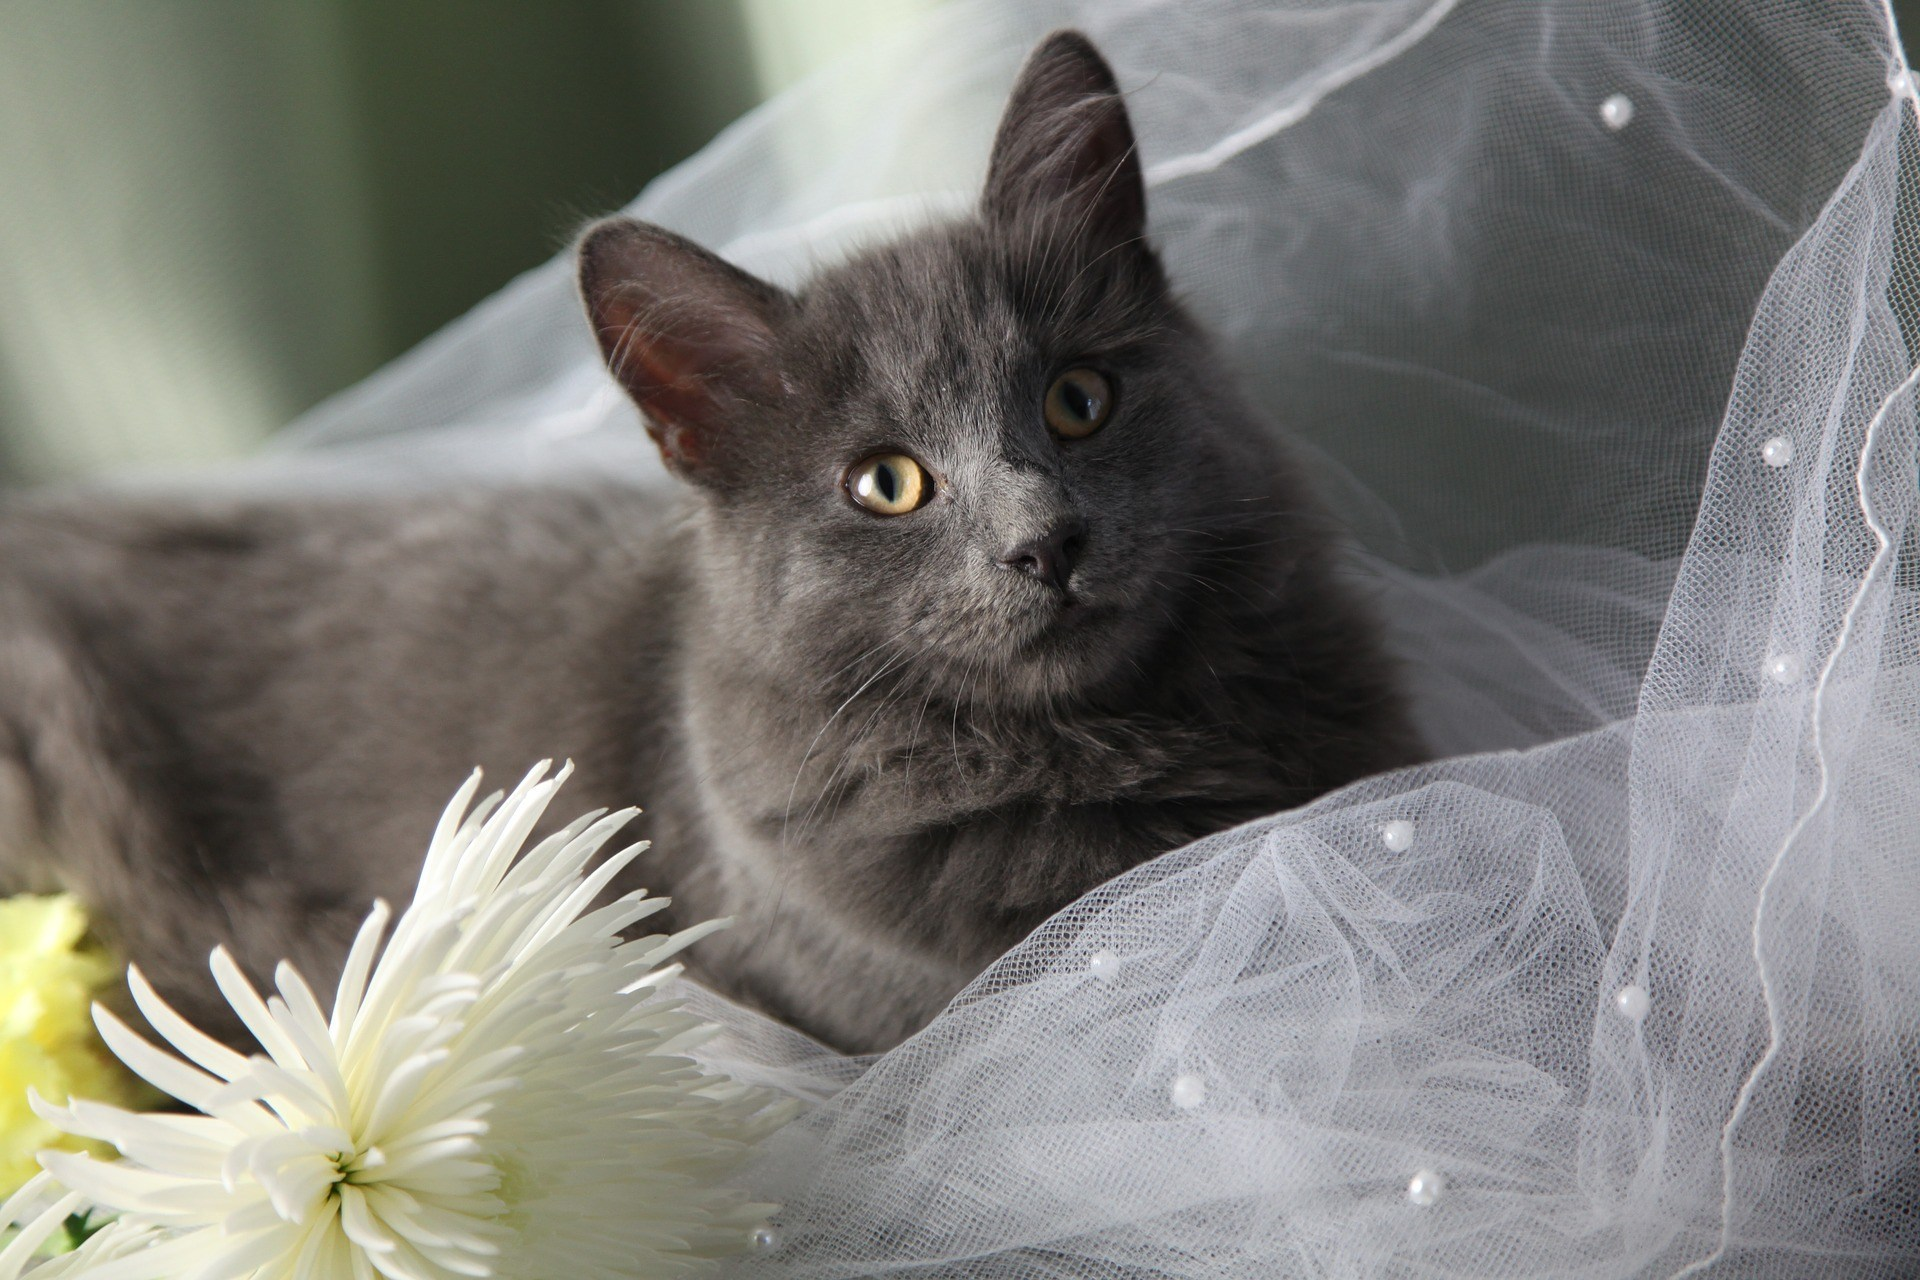 Pets are Guests at Almost Half of Weddings Survey Reveals  Pets are Guests at Almost Half of Weddings Survey Reveals maine coon cat 3668595 1920